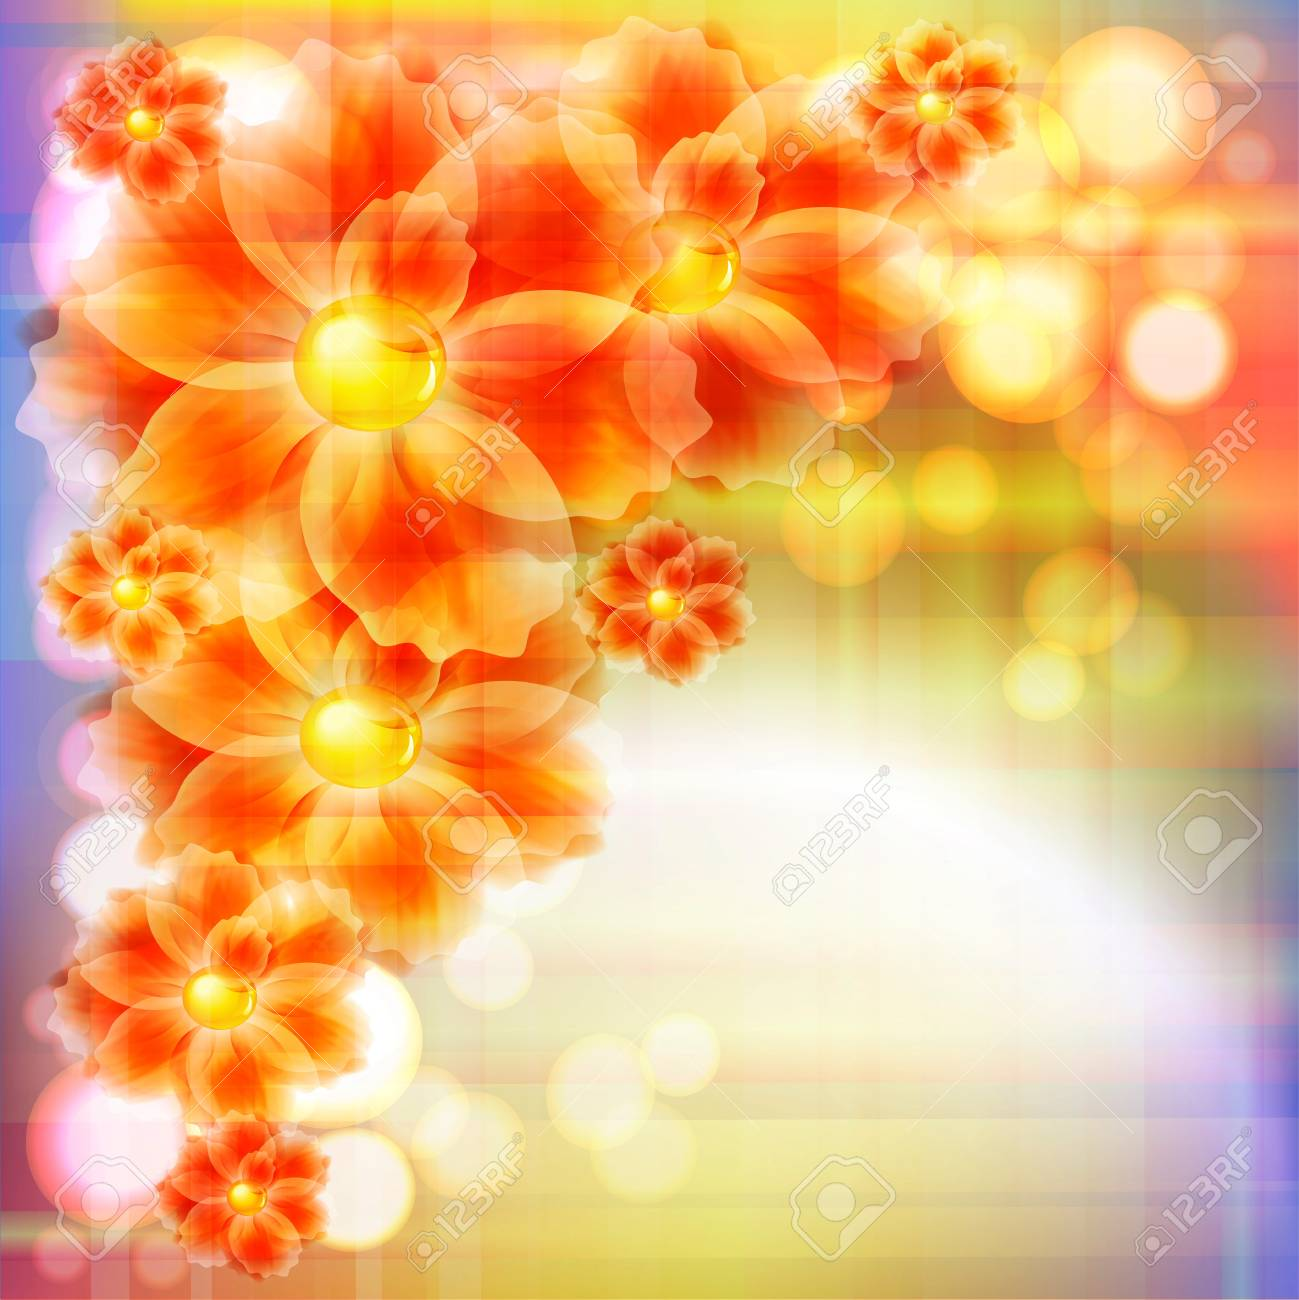 Flowers bright a background are more transparent Stock Vector - 12868627